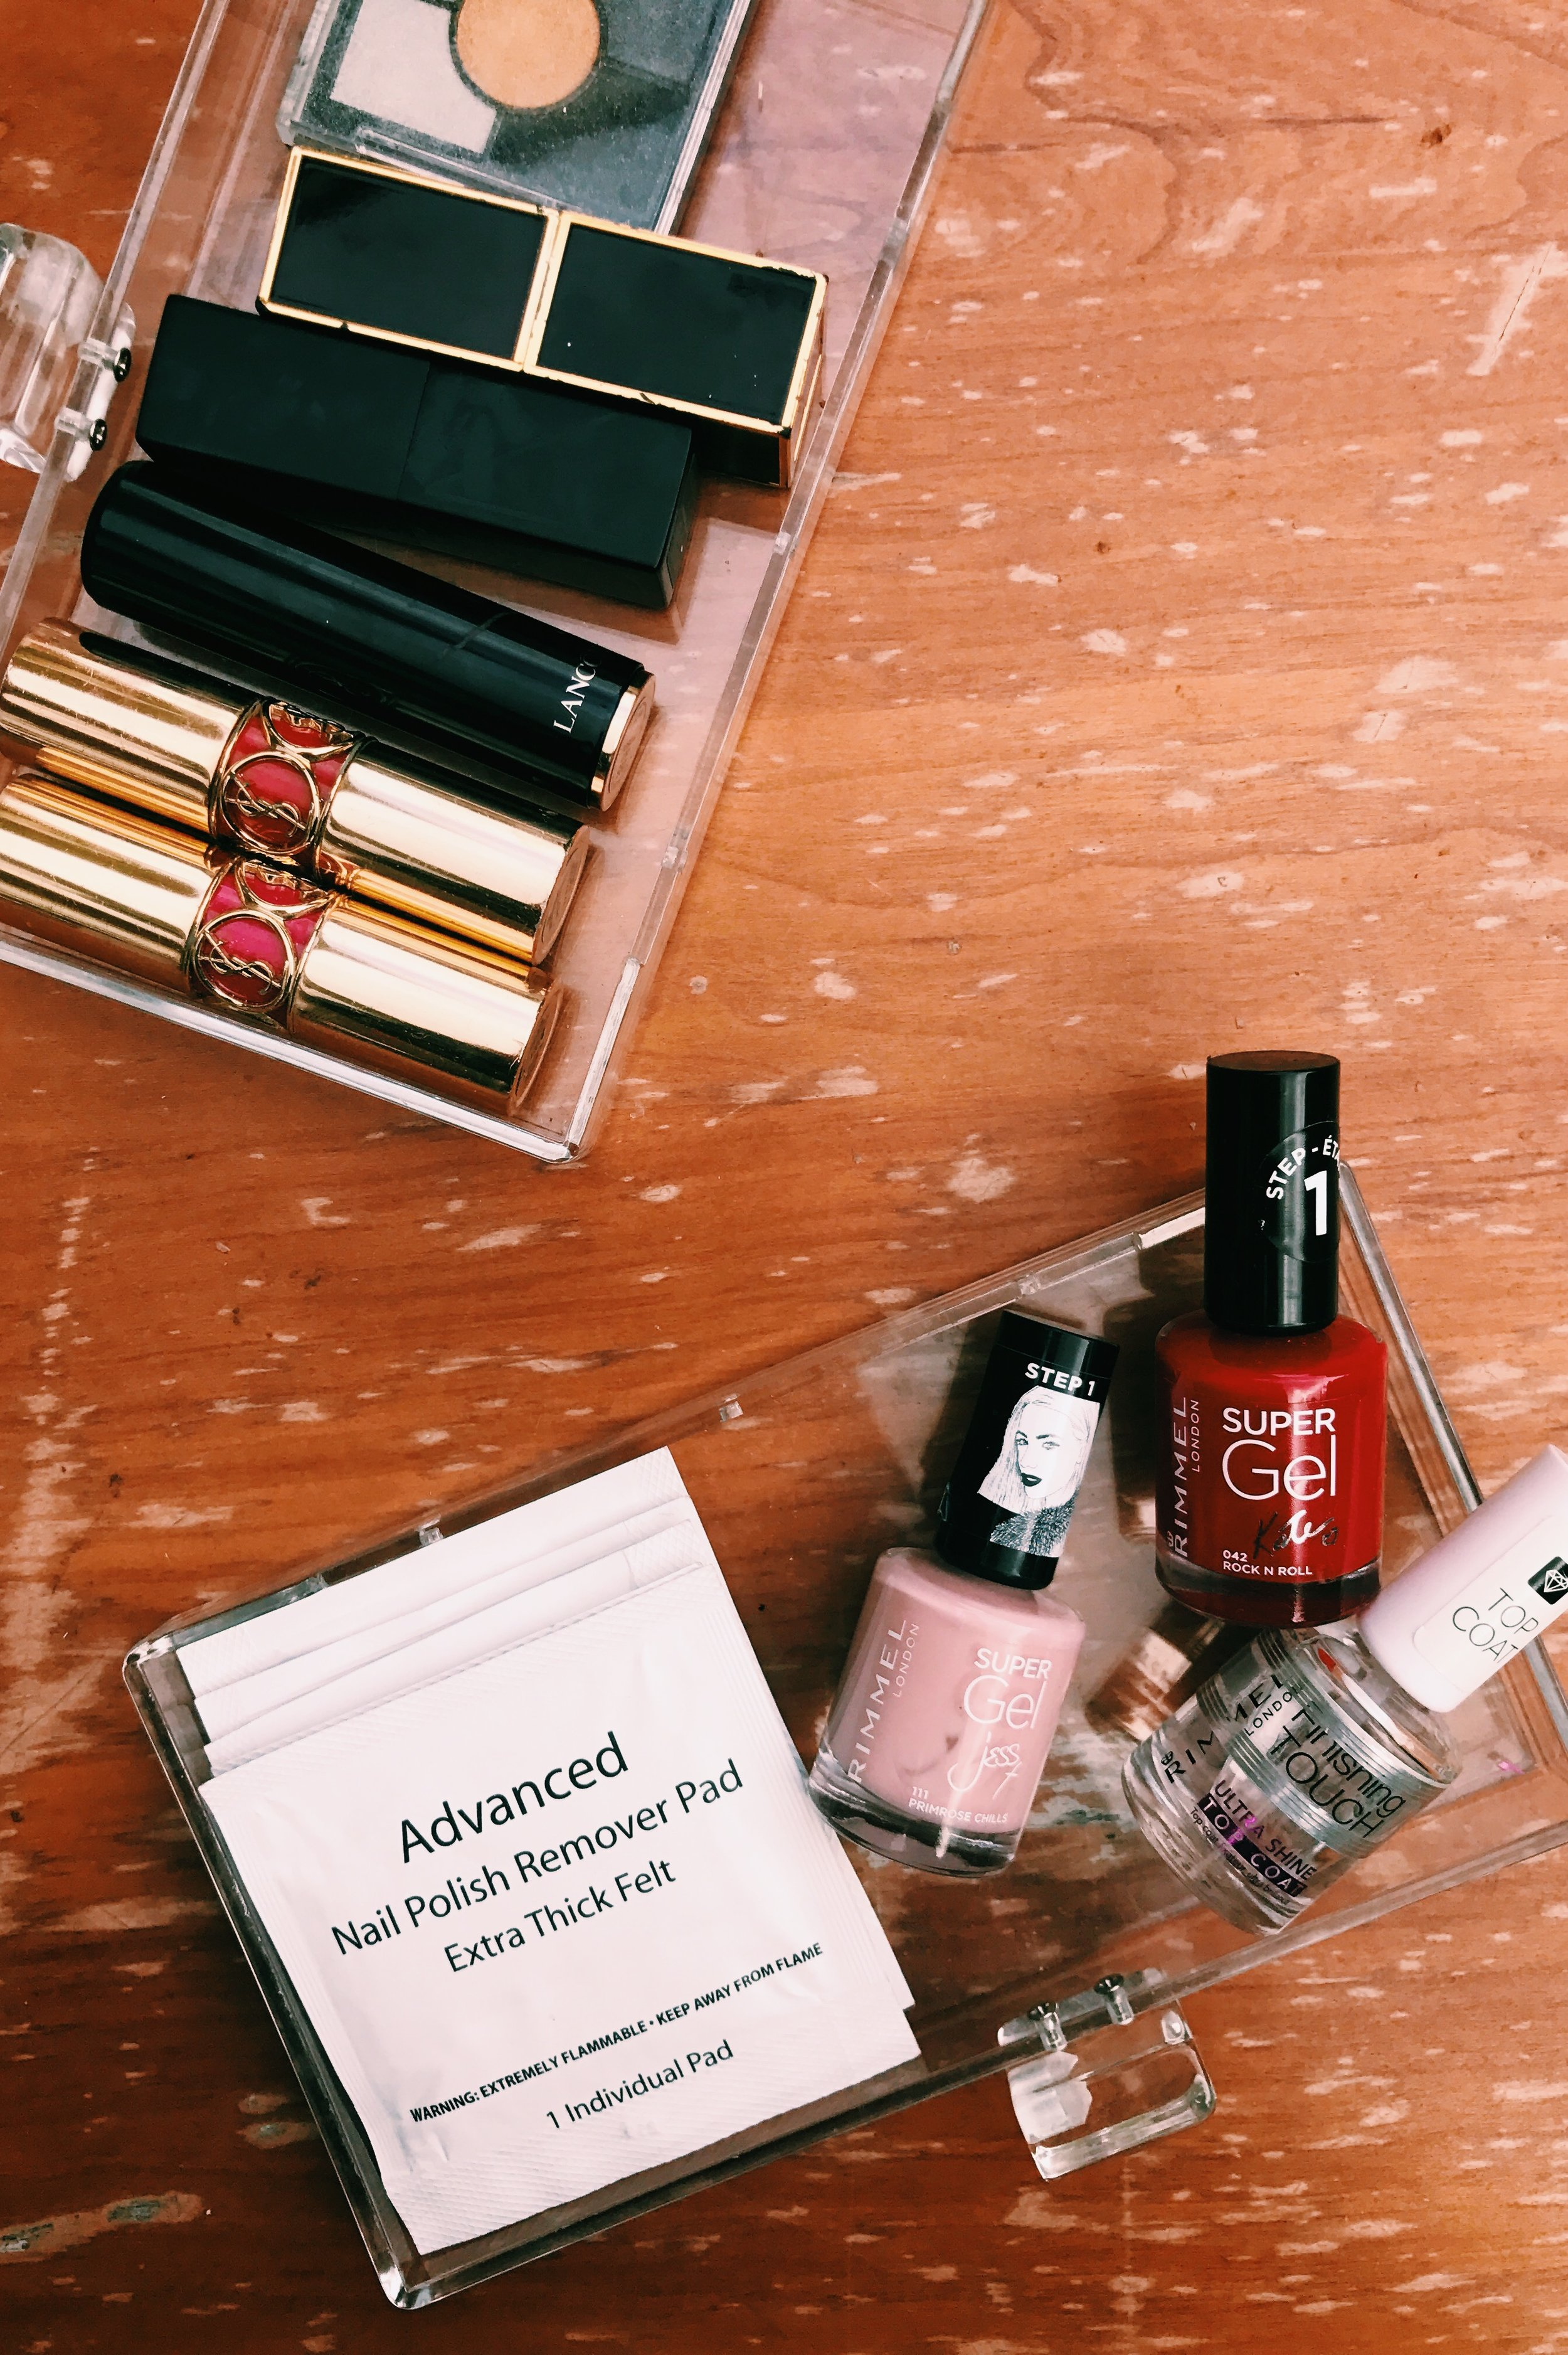 Nailed It.  - And you can, too, if you get Rimmel Super Gel Kate New Romantic or Rock And Sparkle {don't forget to get your Top Coat with it to get that Shellac look we all want!}Use Nail Polish Remover Pads for a fuzz-free removal